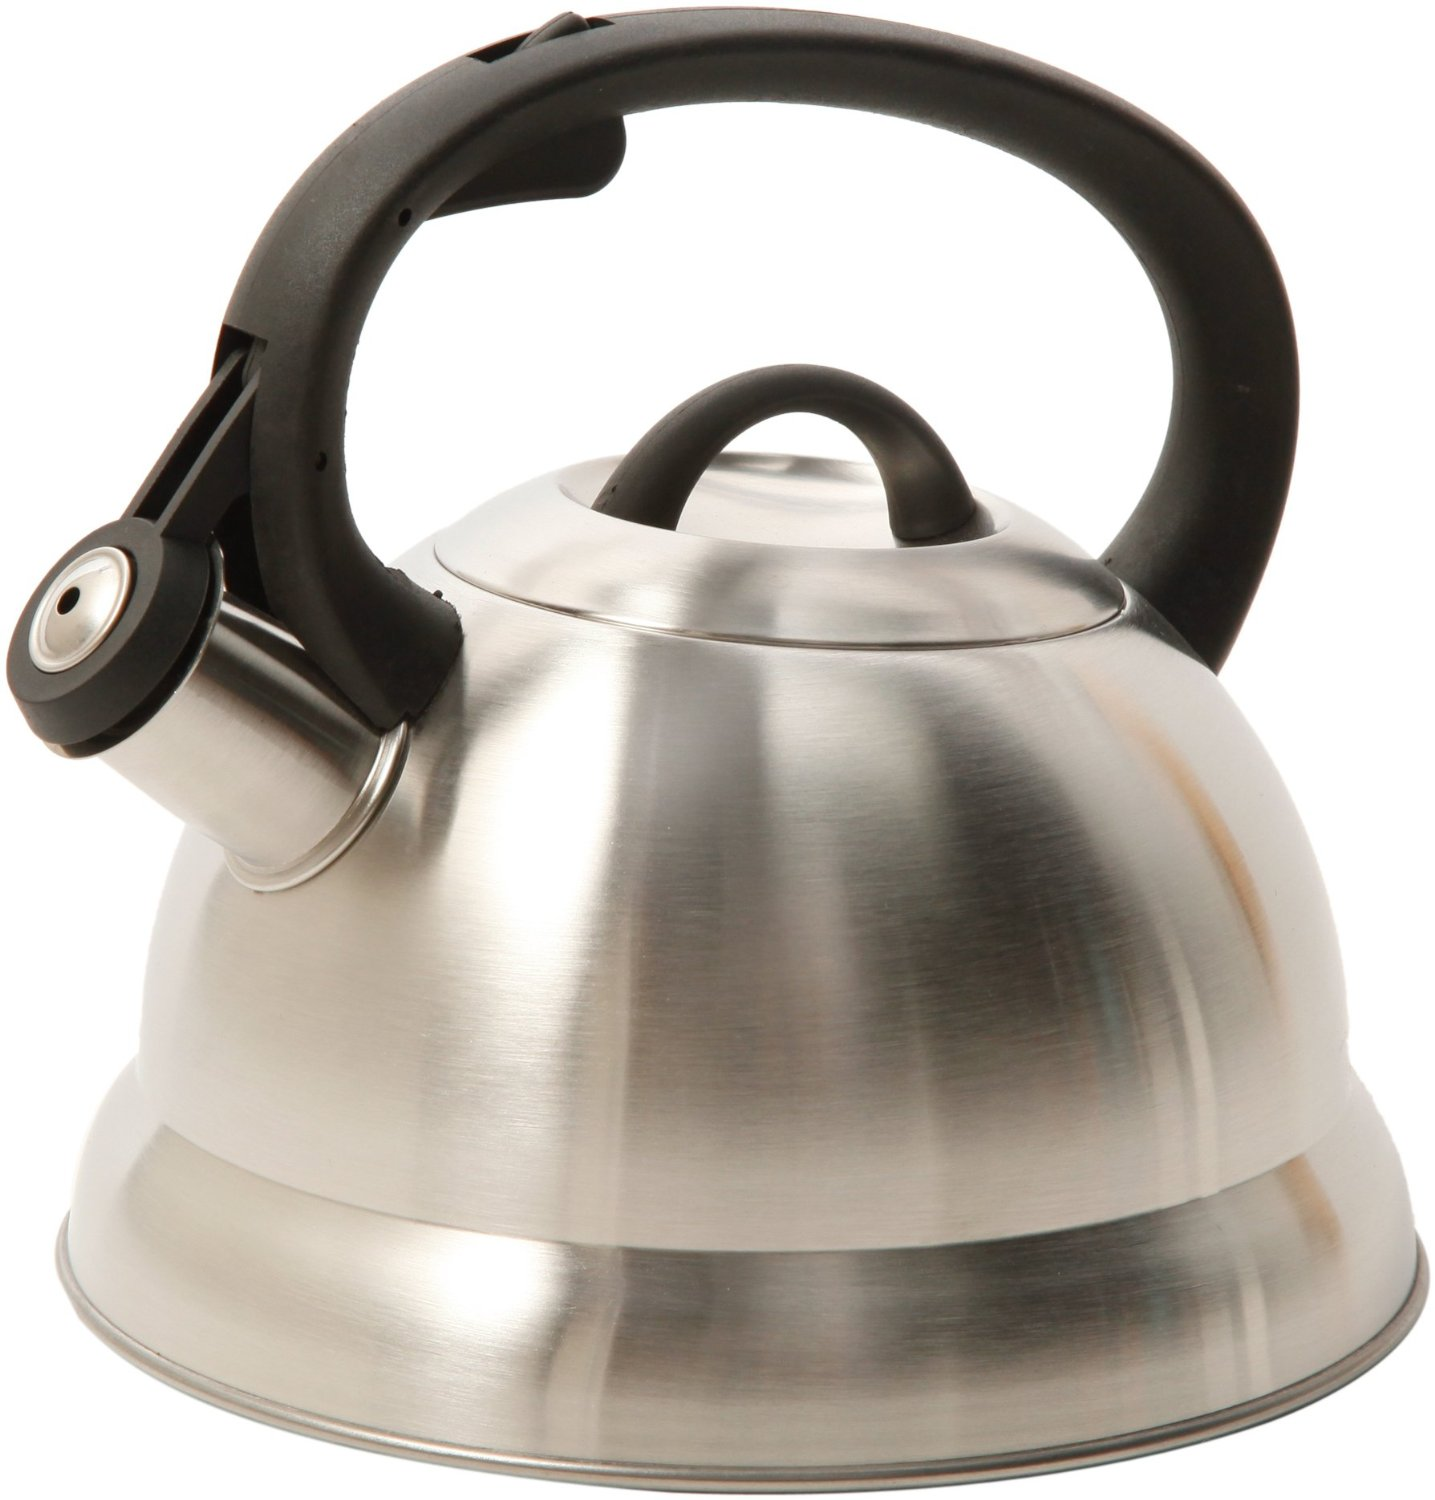 Mr. Coffee Flintshire Tea Kettle